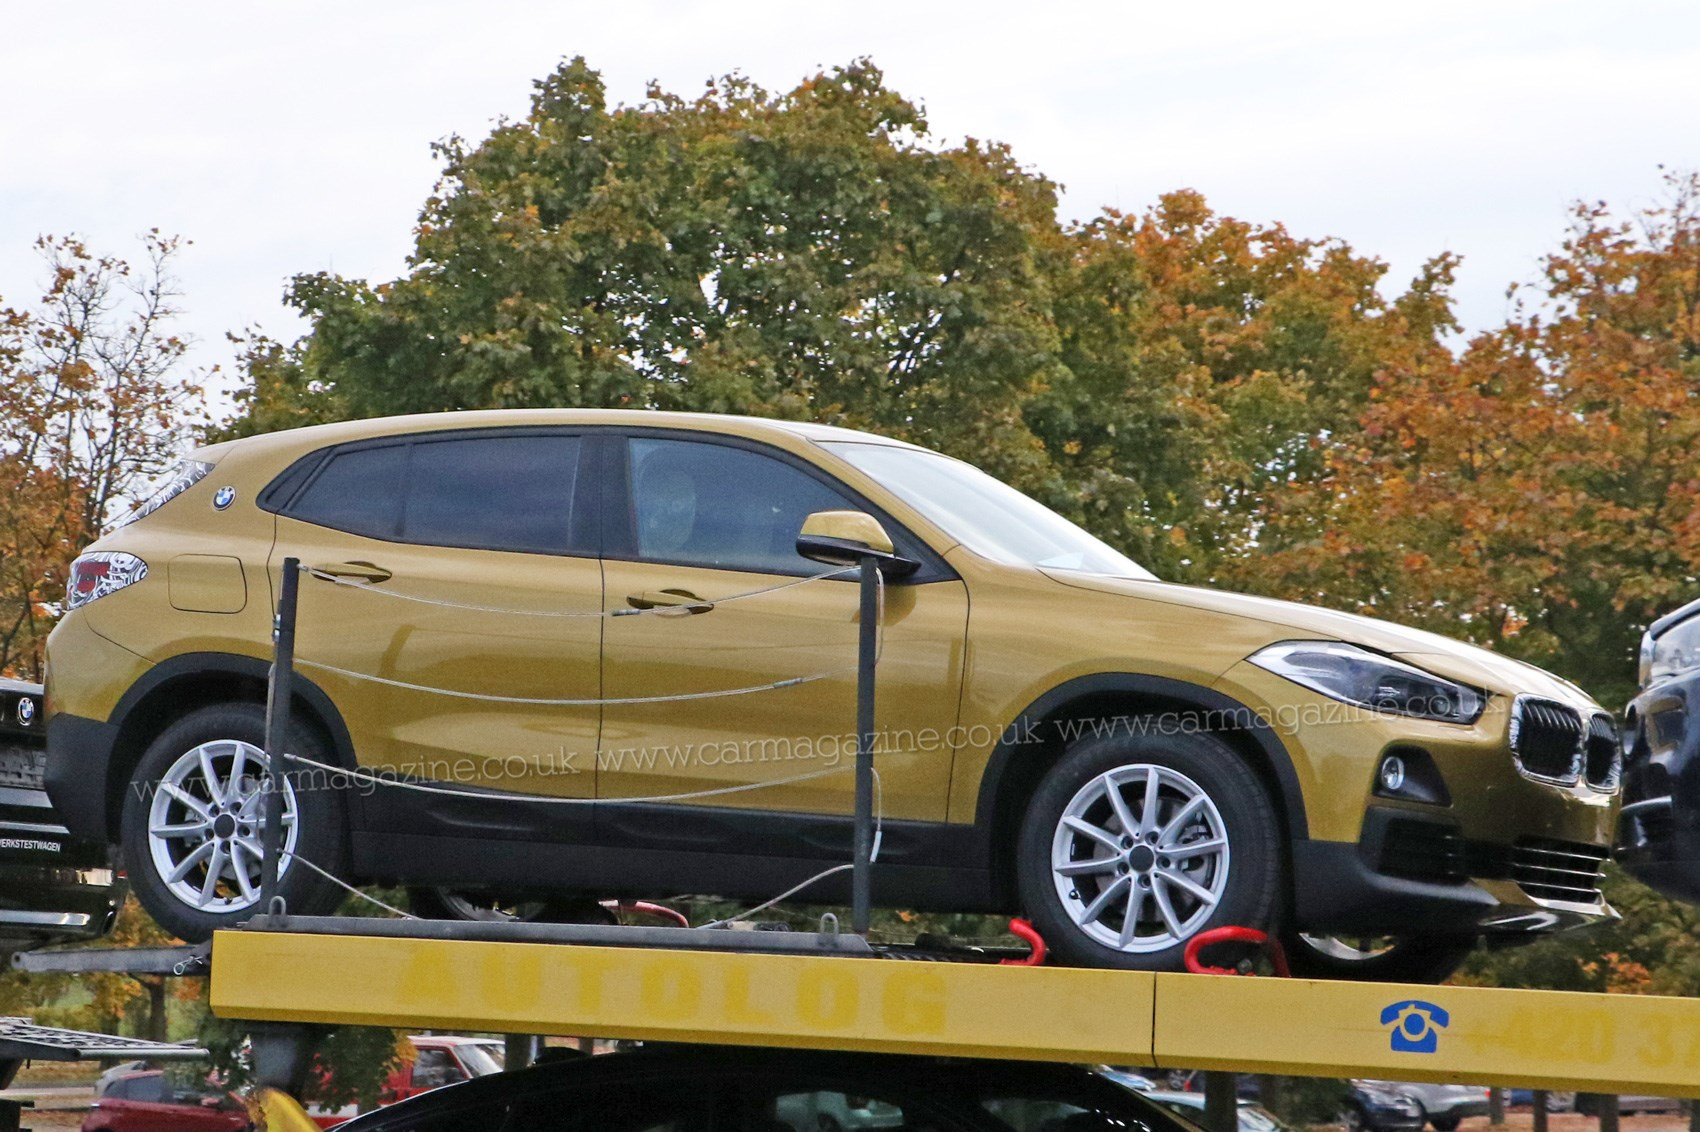 This Is Our Best Look Yet At The New Bmw X2 Suv By Car